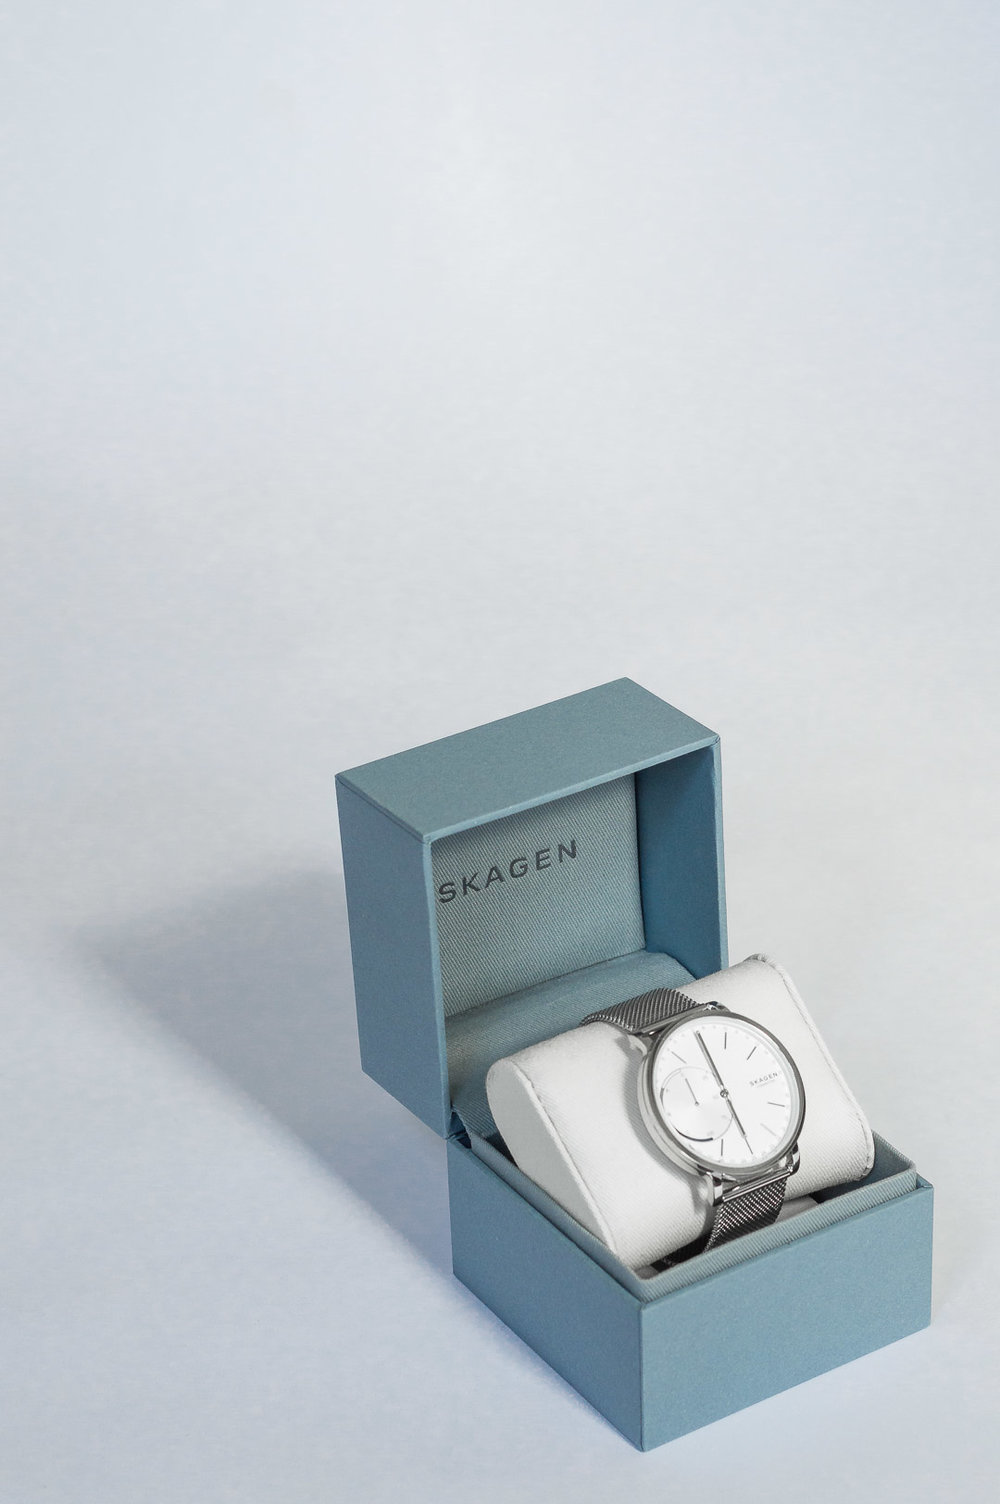 skagen connected smart watch